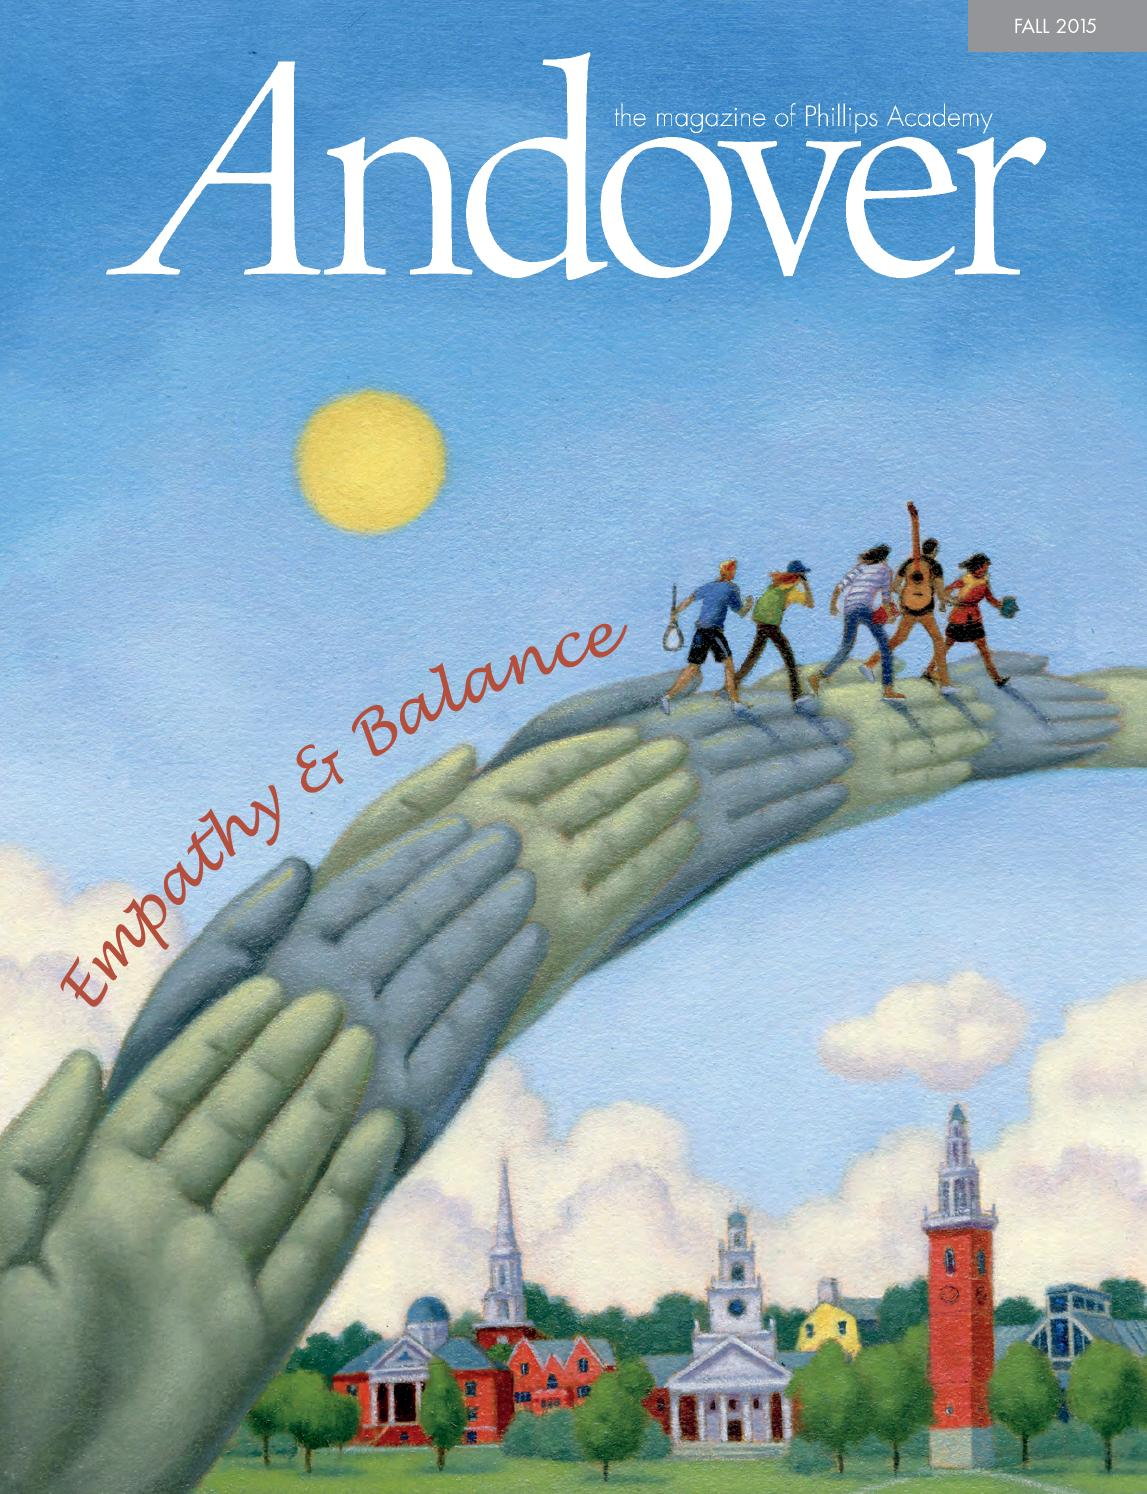 Andover magazine: Fall 2015 by Phillips Academy - issuu